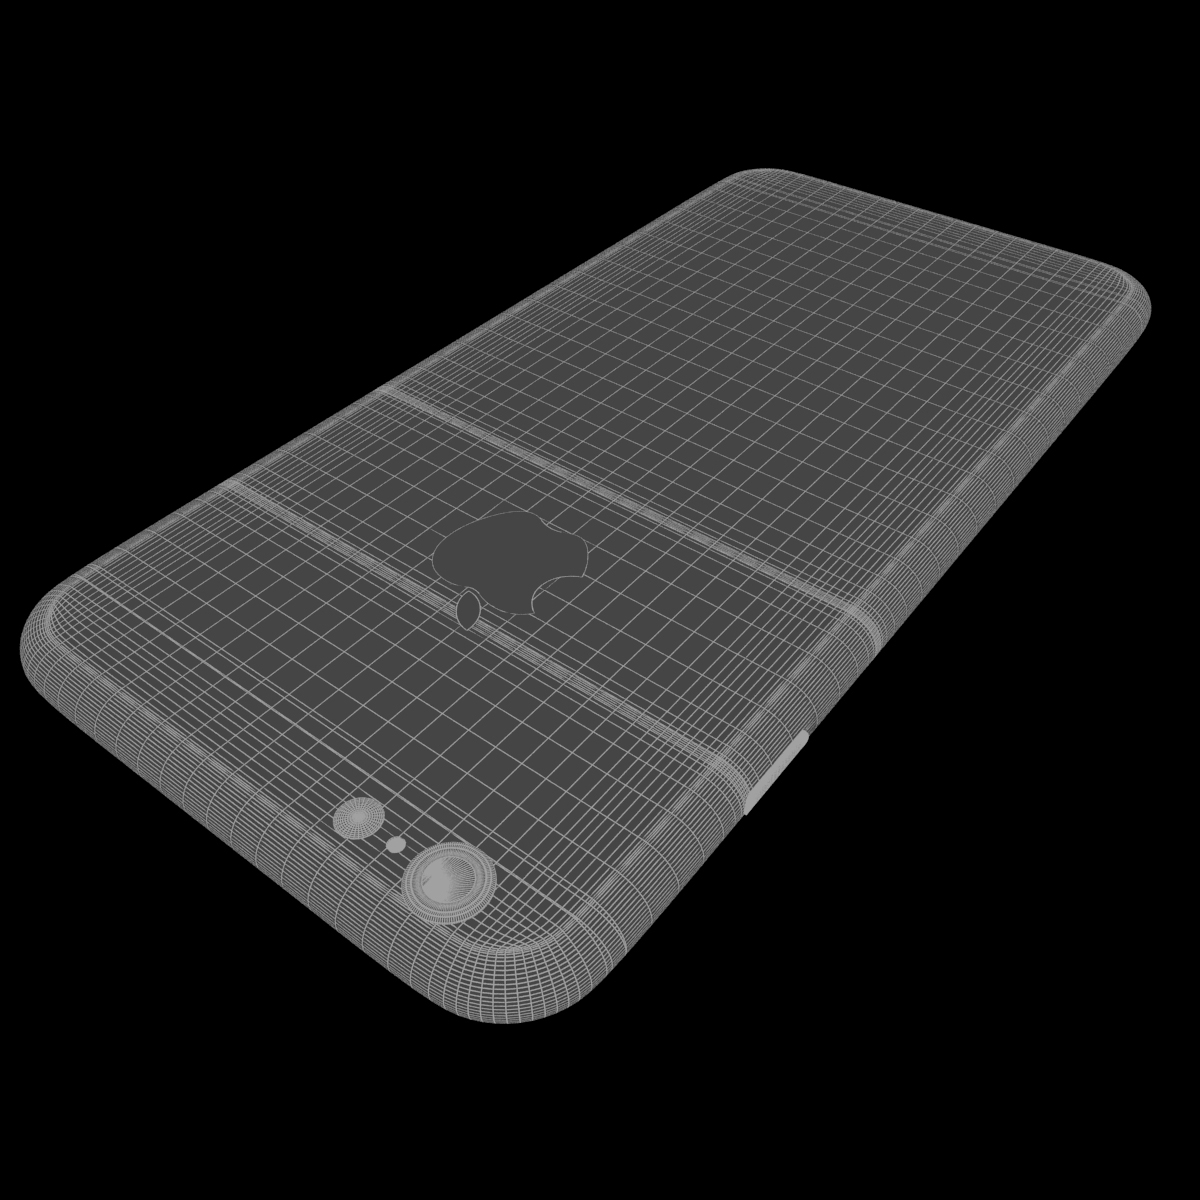 jabuka iphone 6s 3d model max fbx ma mb tekstura obj 278463